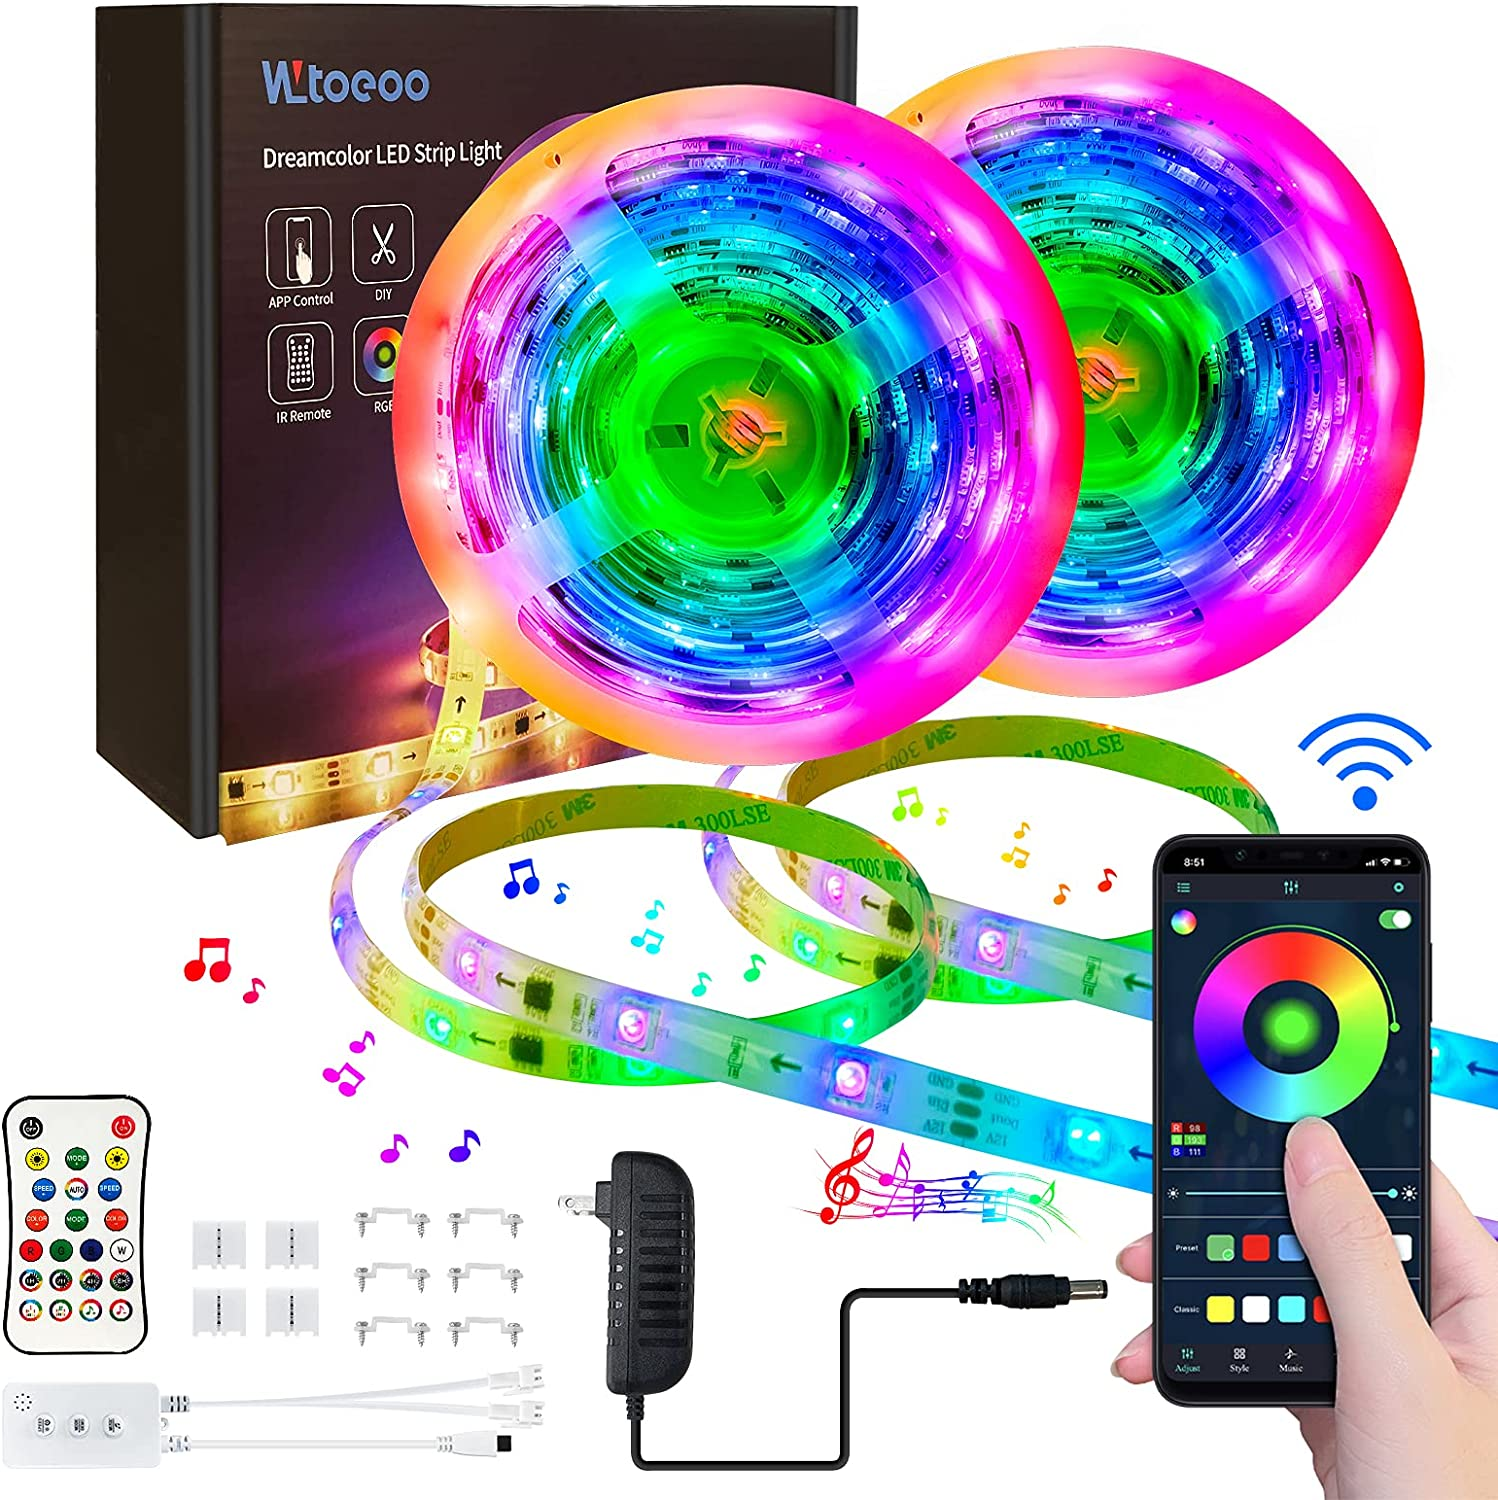 Strip Lights WLtoeoo Smart Challenge the lowest price of Japan ☆ Led Music Outlet sale feature Sync Blu RGBIC